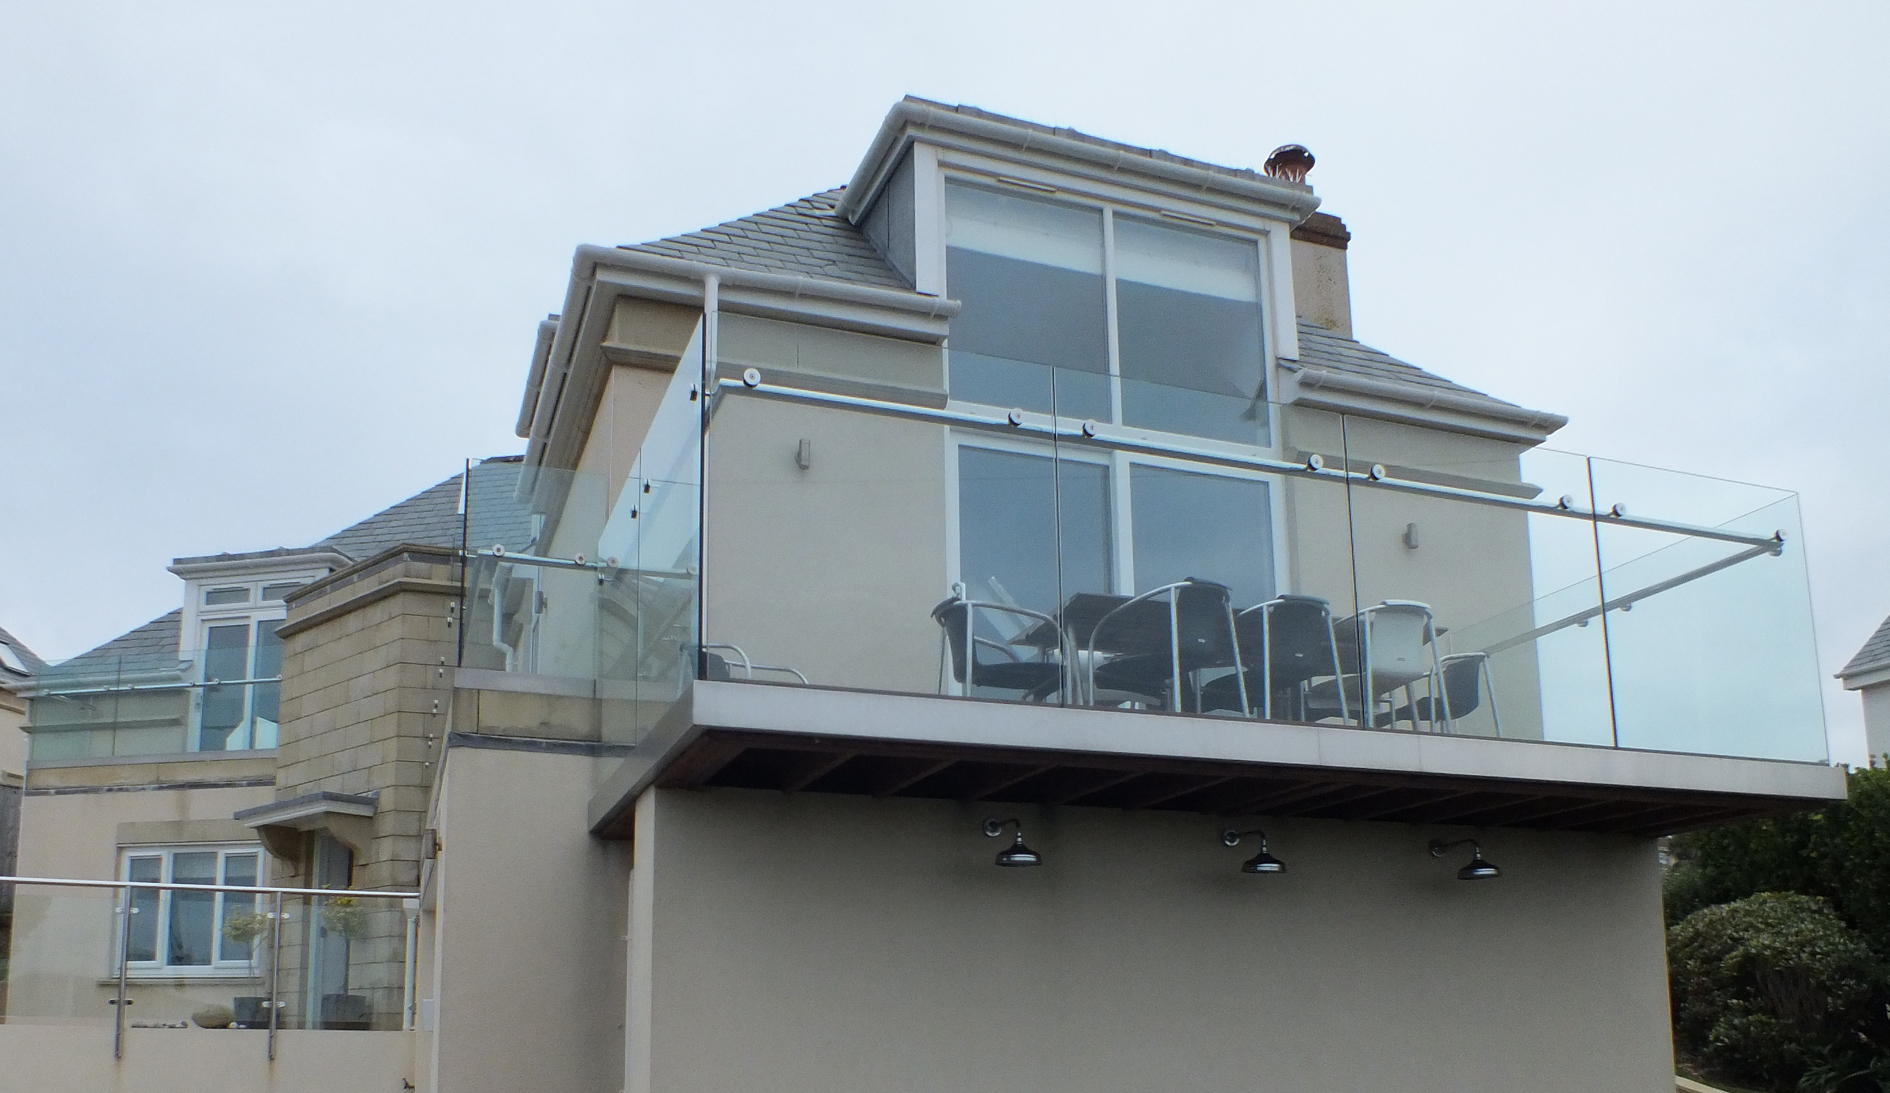 UV Protect solar window film applied to luxurious houses in Thurlestone South Devon UK Tinting Express Ltd